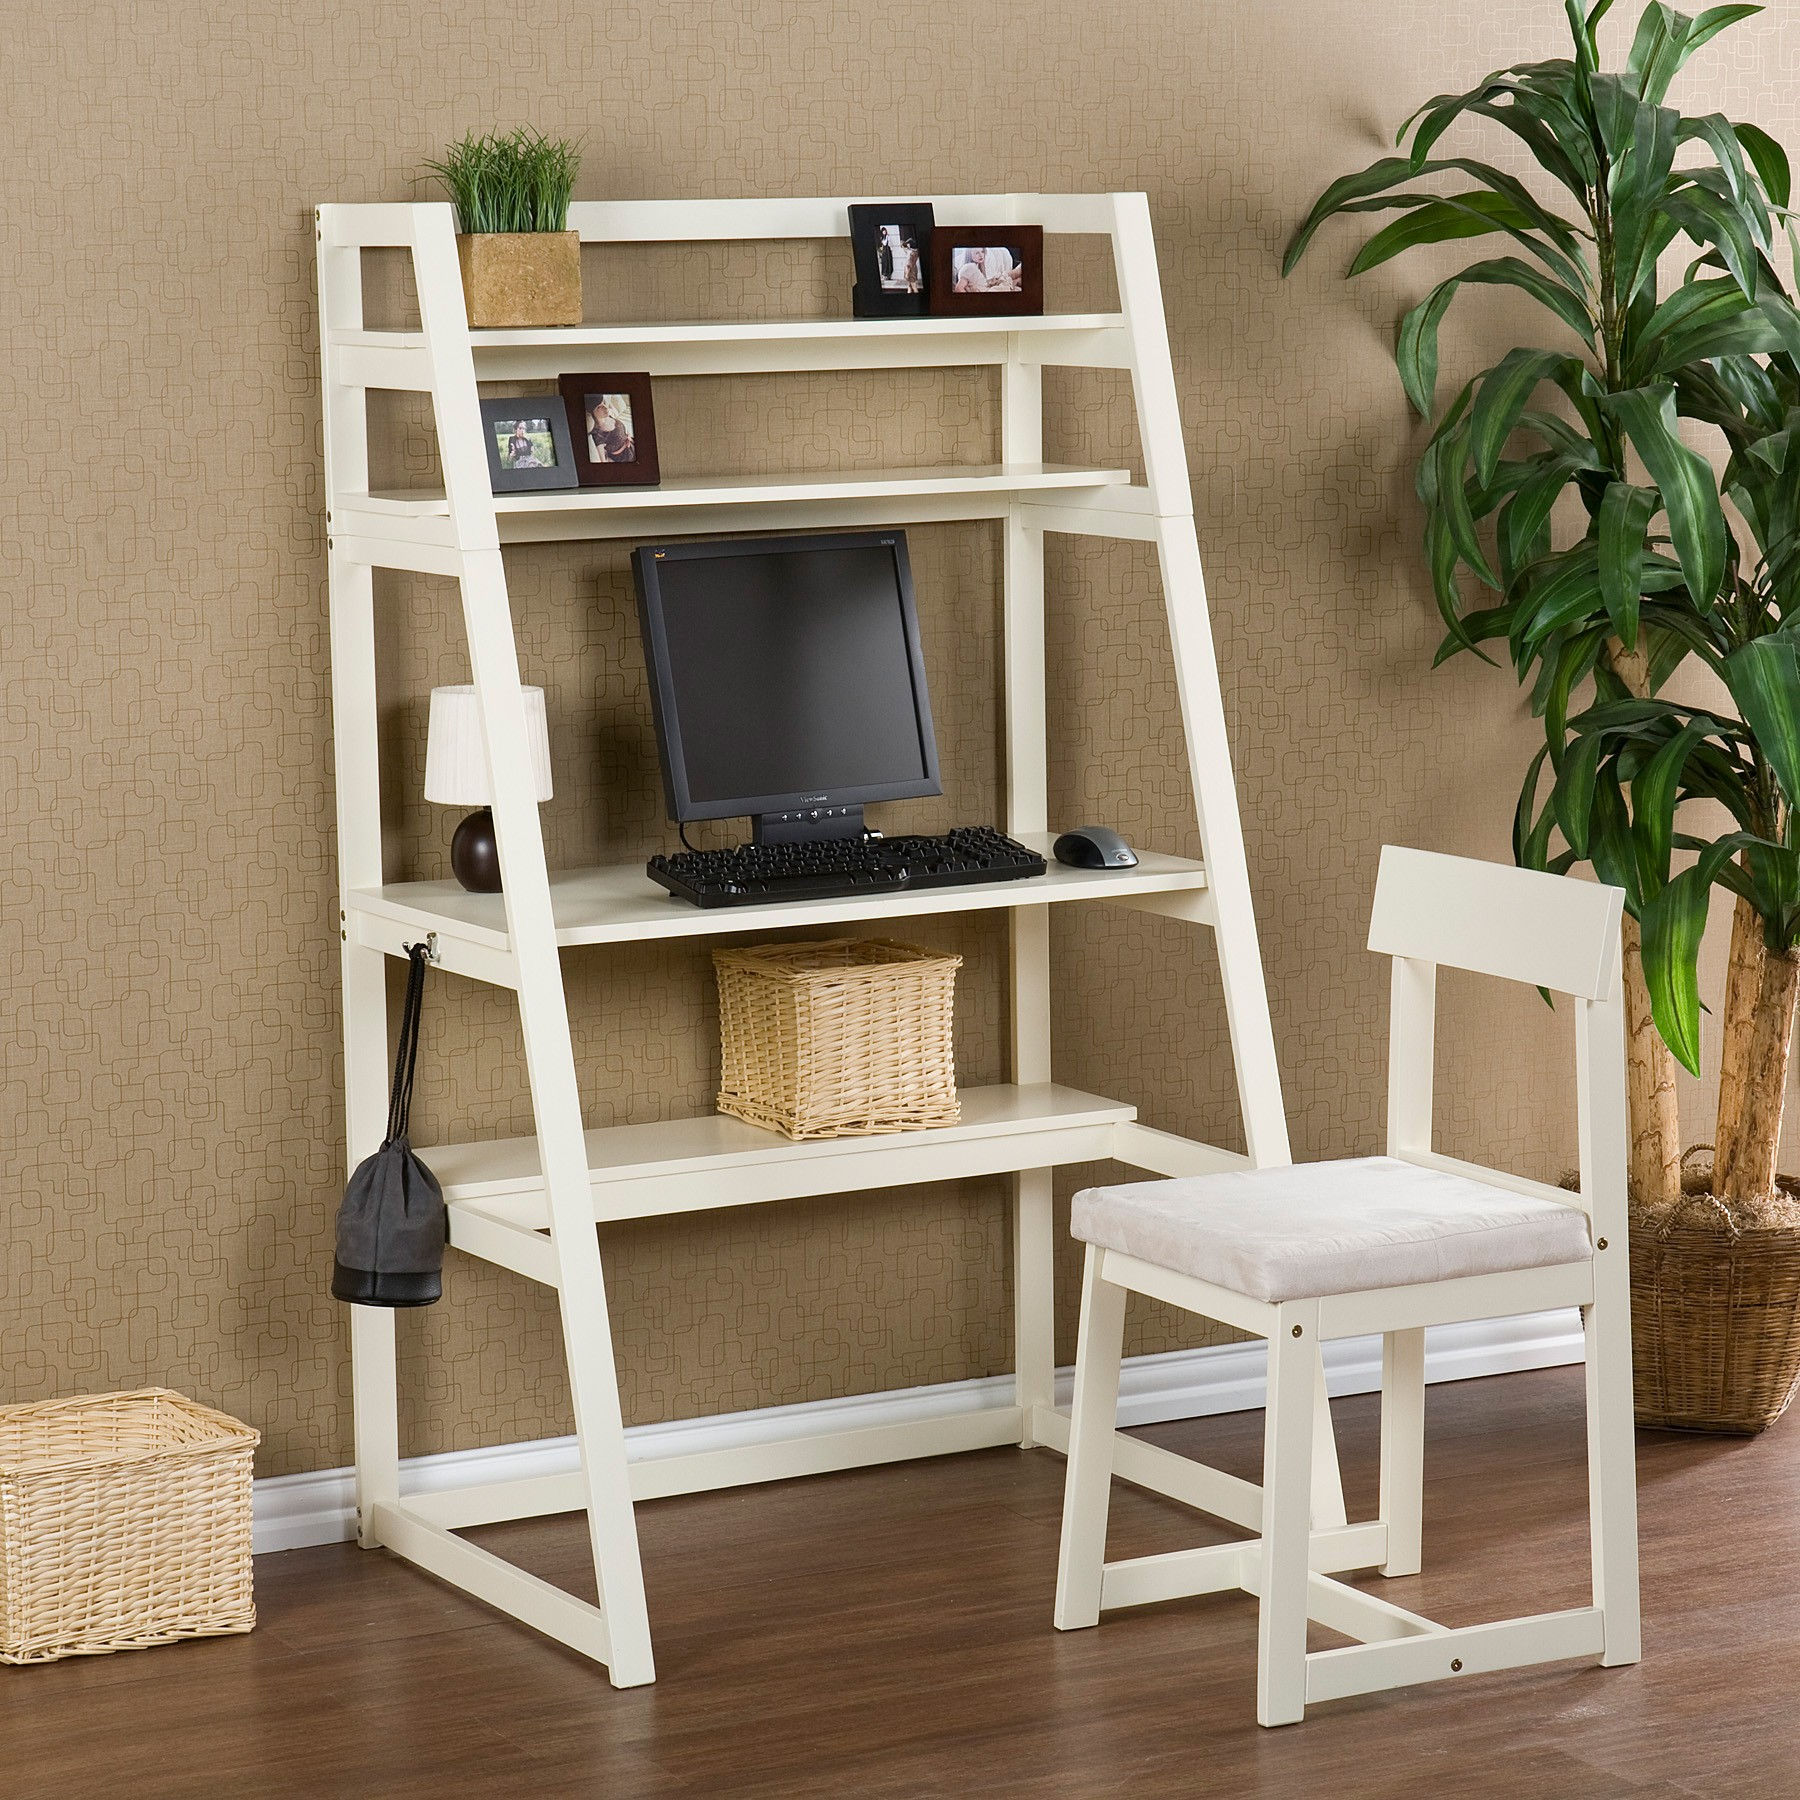 Image of: Rustic White Ladder Bookcase 2018